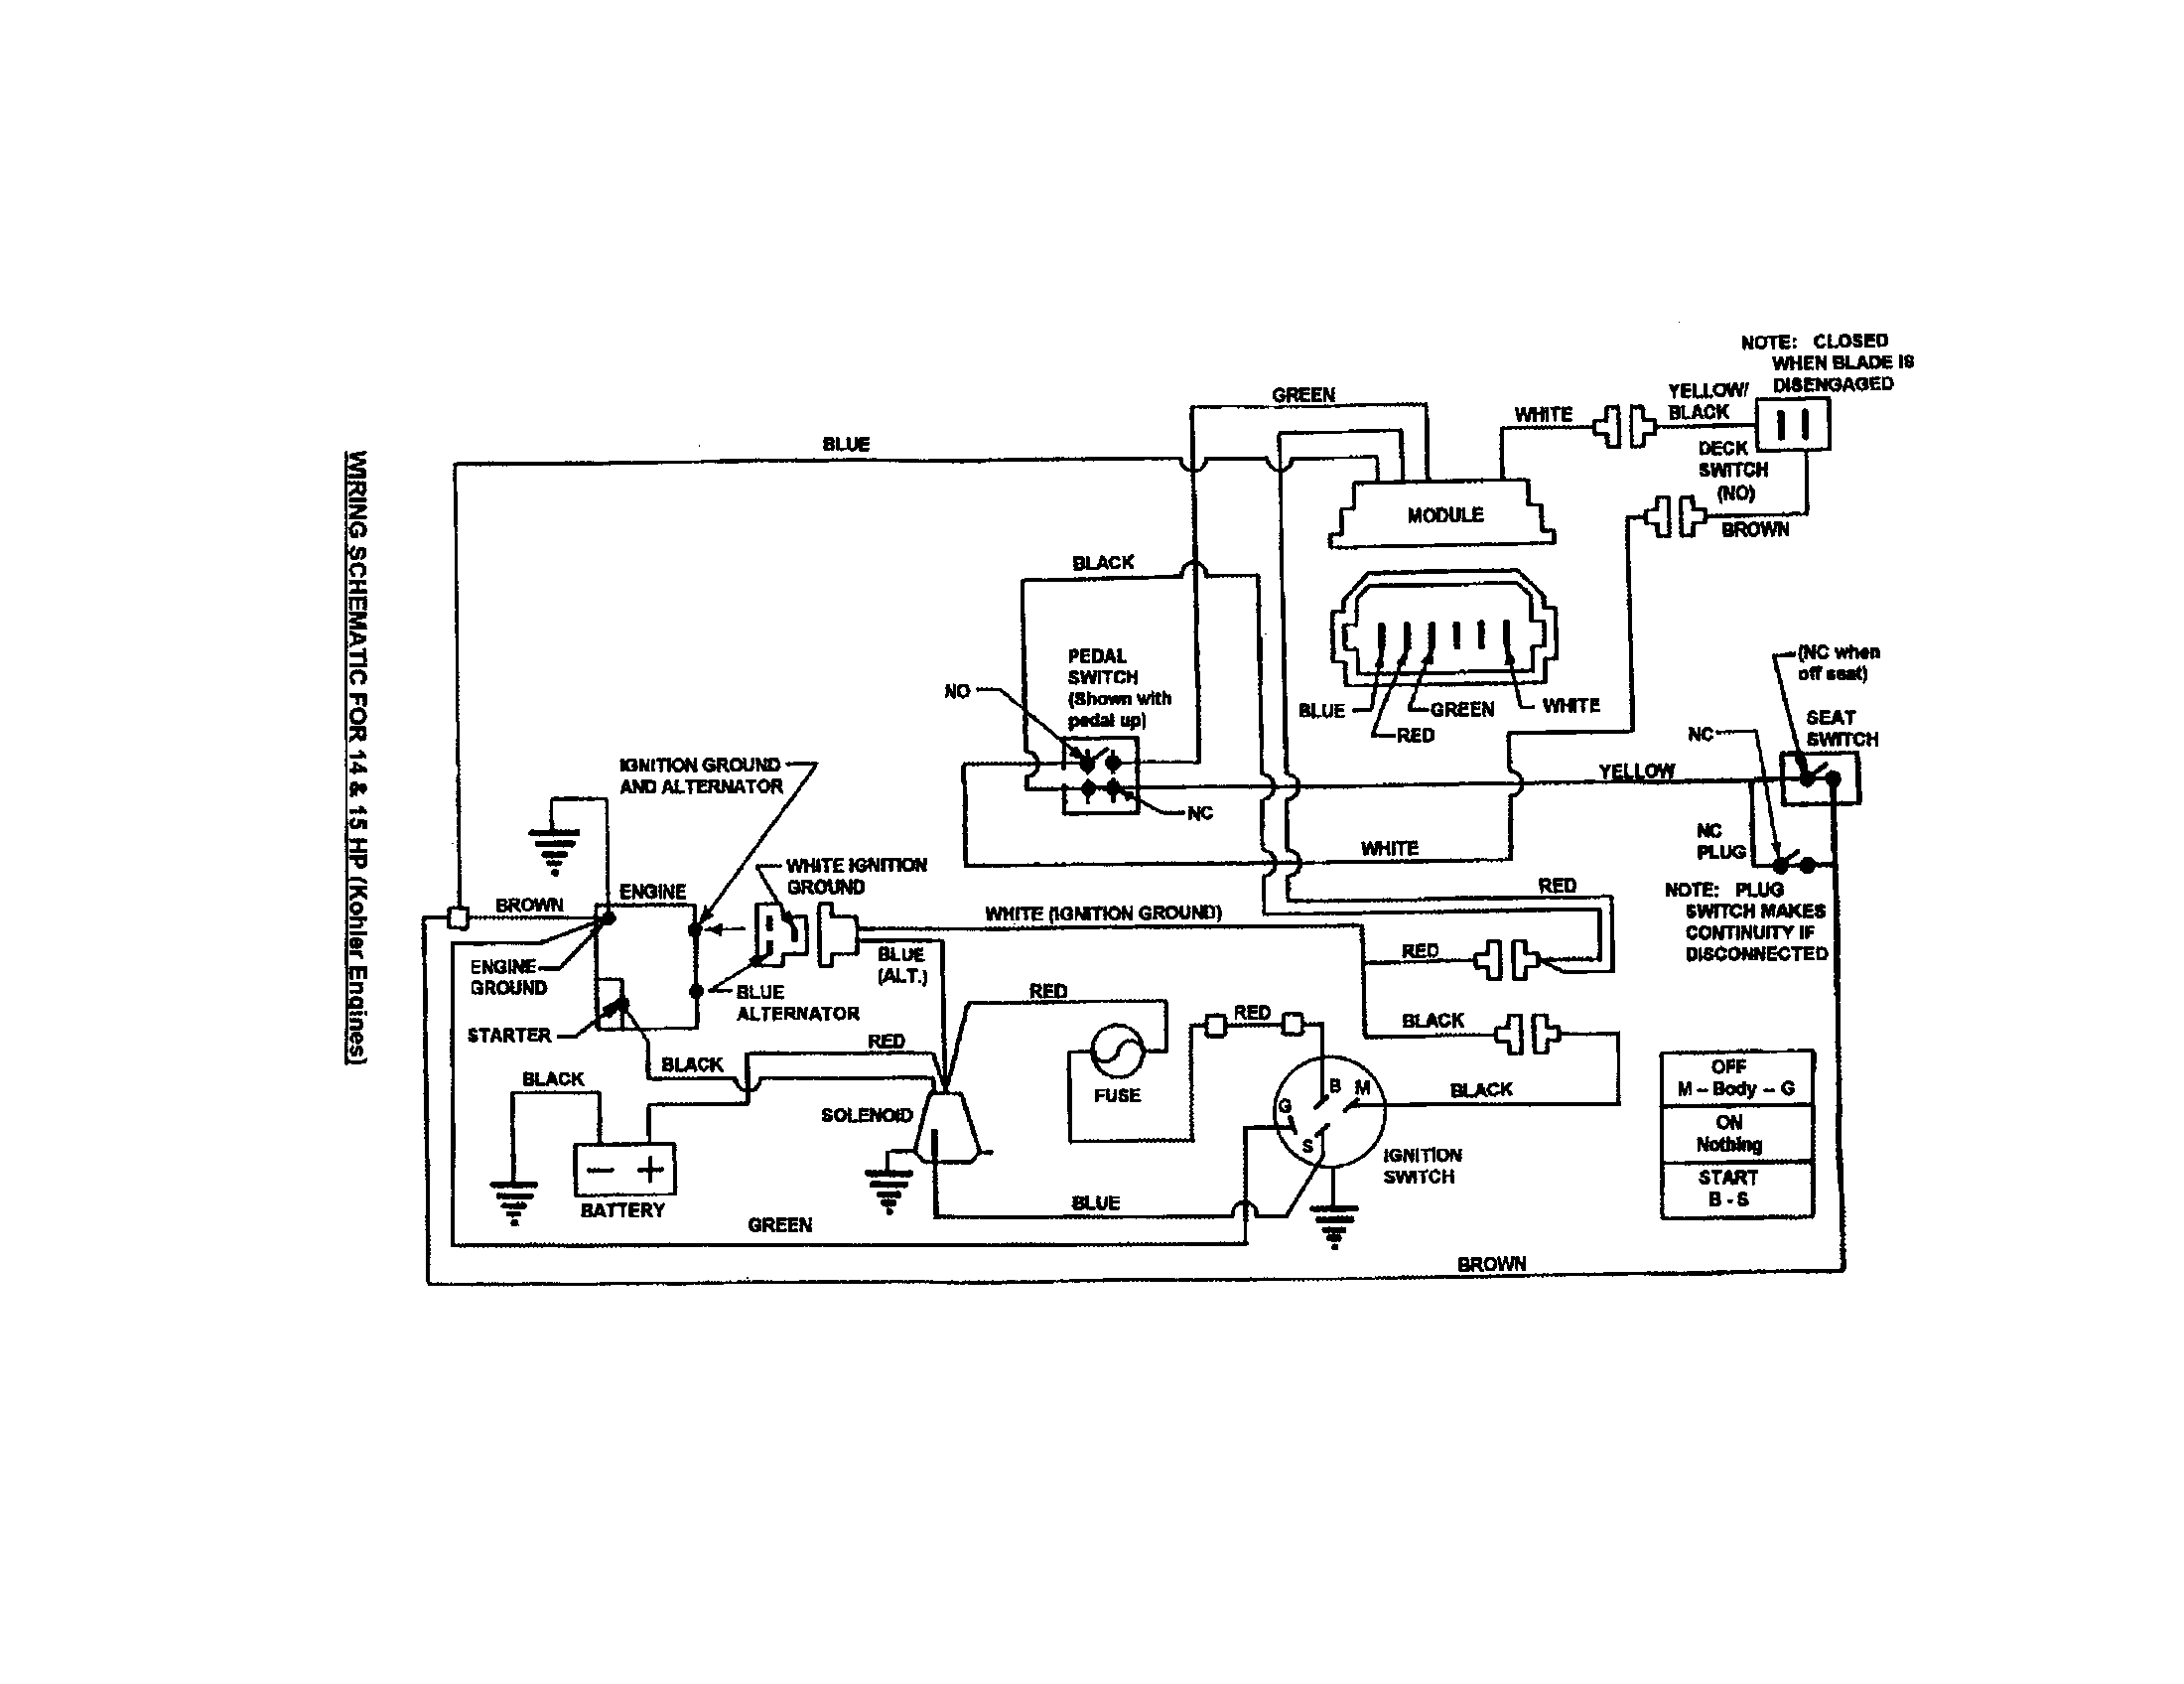 Case Lawn Tractor Wiring Diagram 222, Case, Free Engine